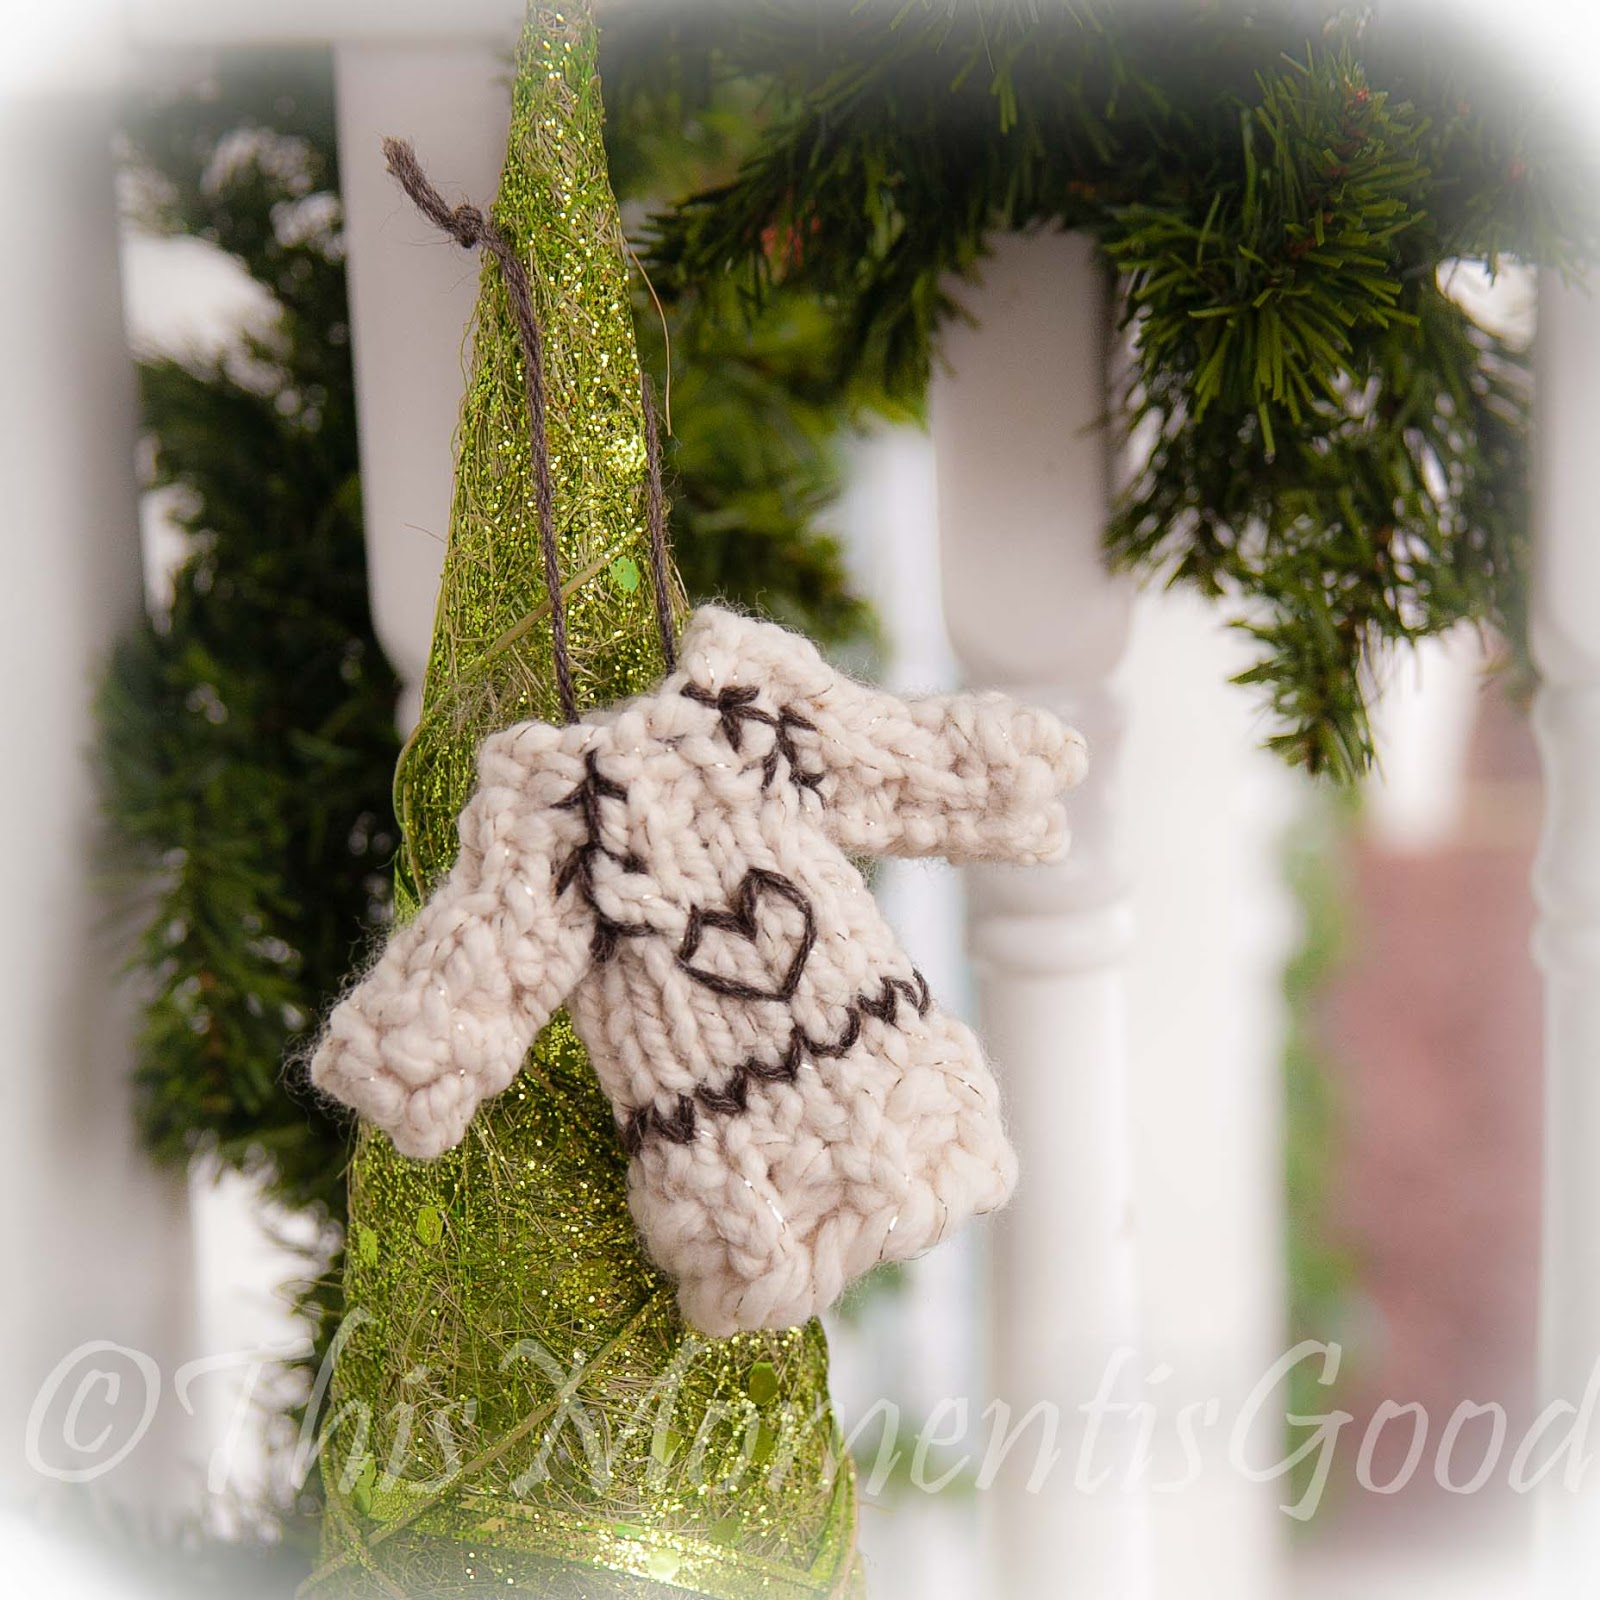 LOOM KNIT SWEATER ORNAMENT PATTERN! | Loom Knitting by This Moment ...